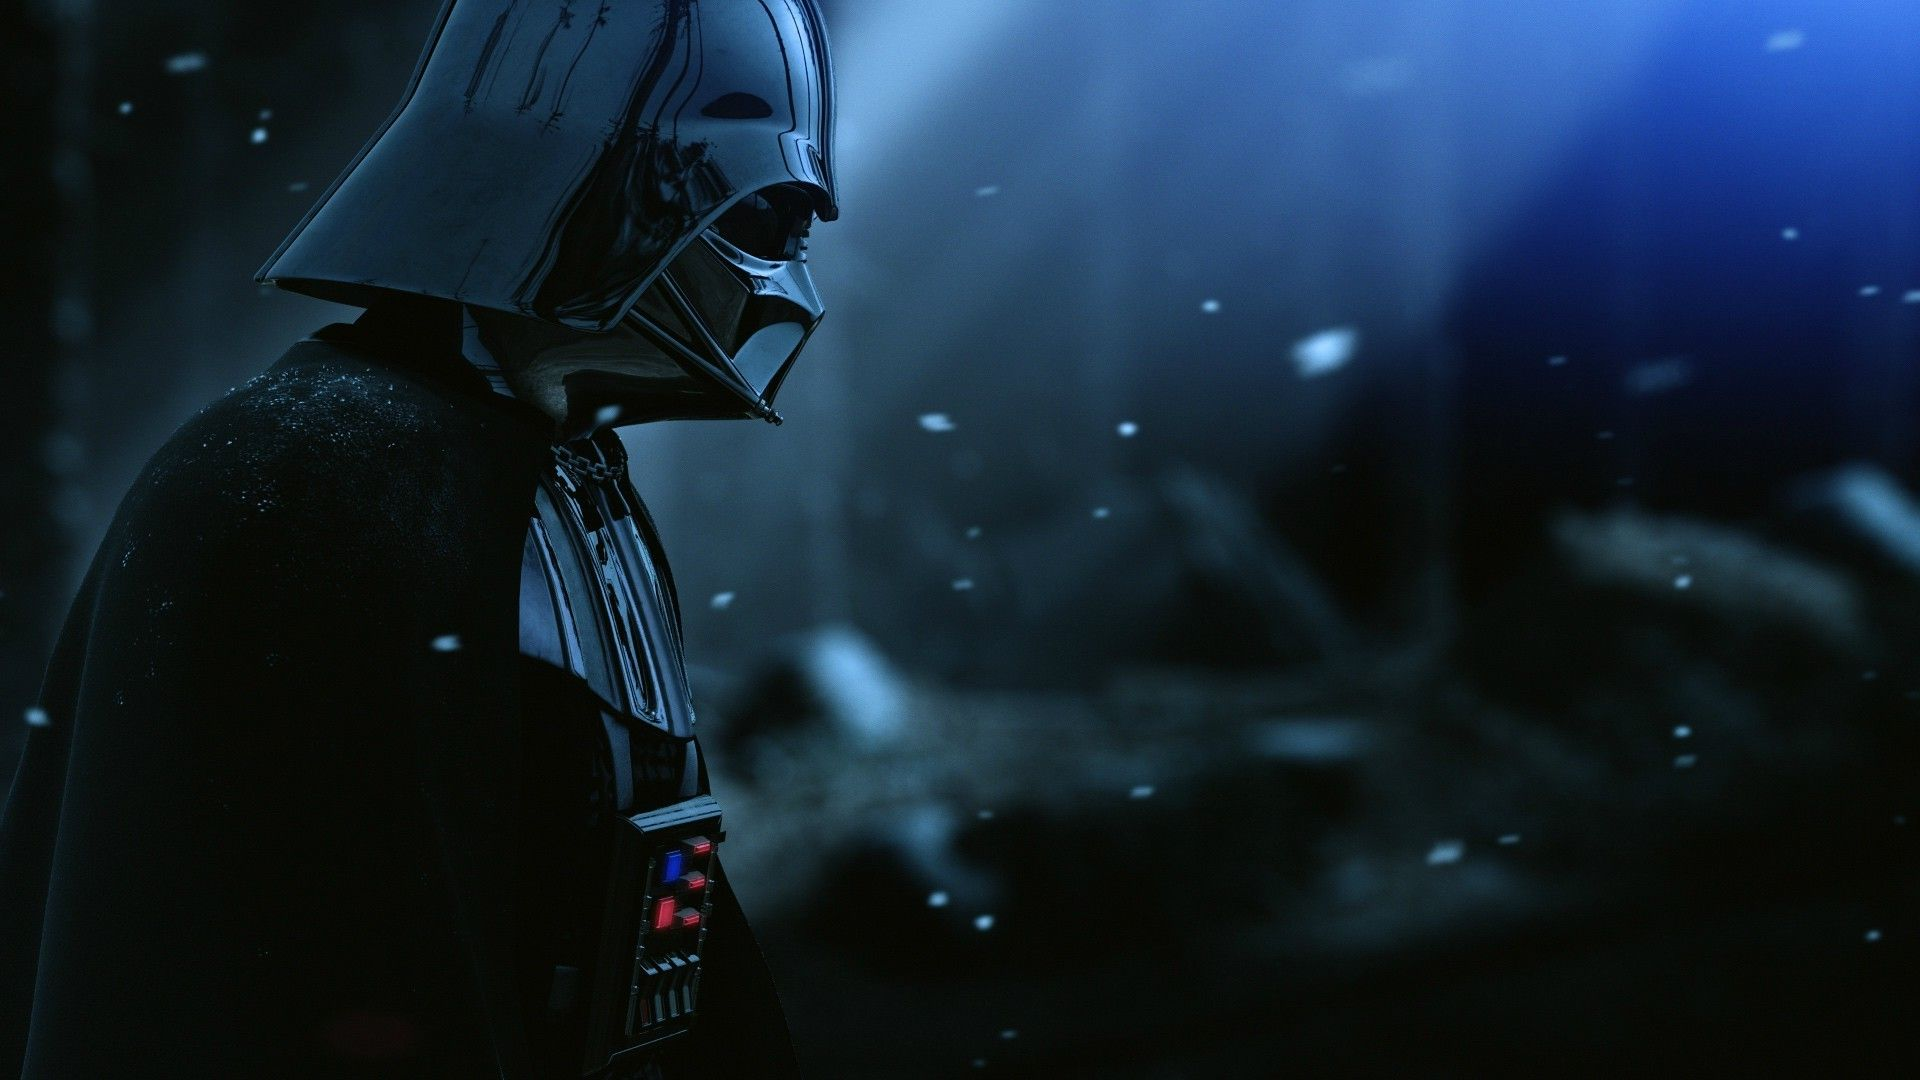 darth vader wallpaper phone